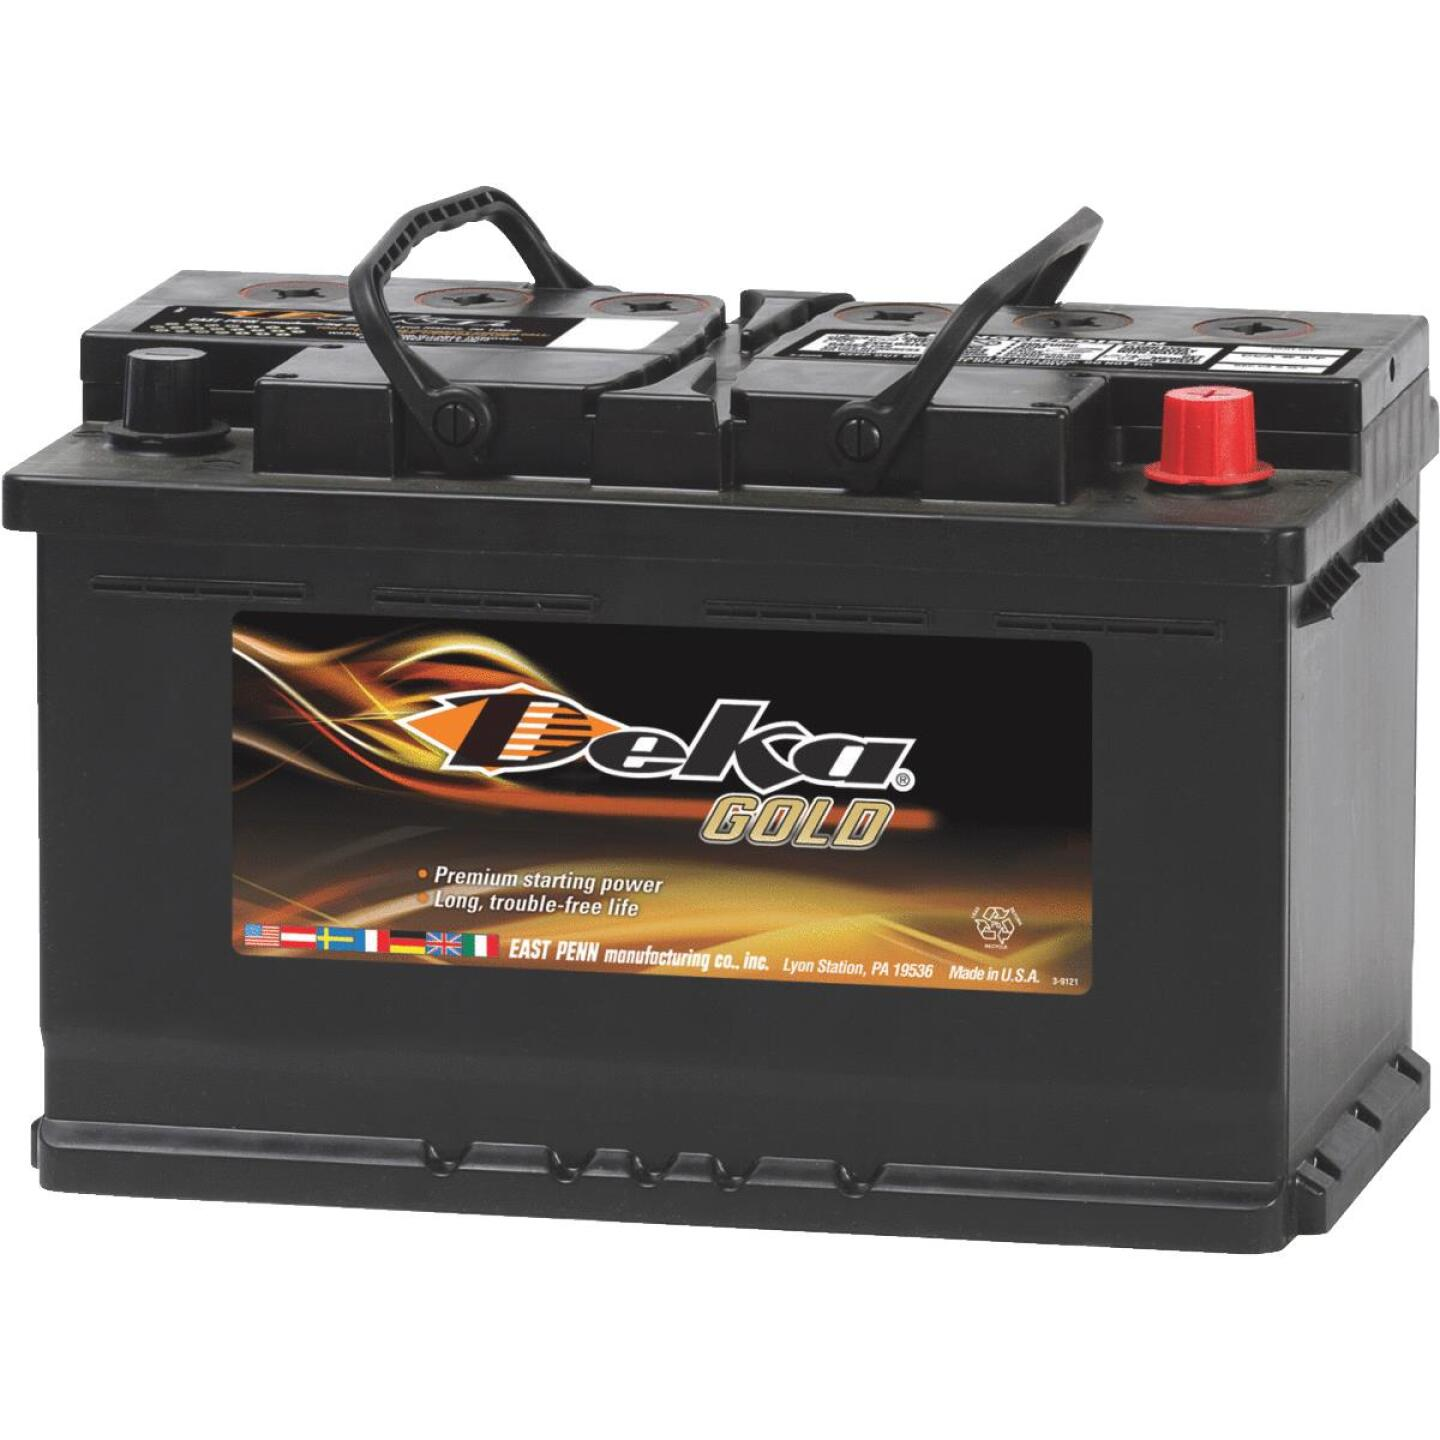 Deka Gold 12-Volt 790 CCA Automotive Battery, Top Post Right Front Positive Terminal Image 1